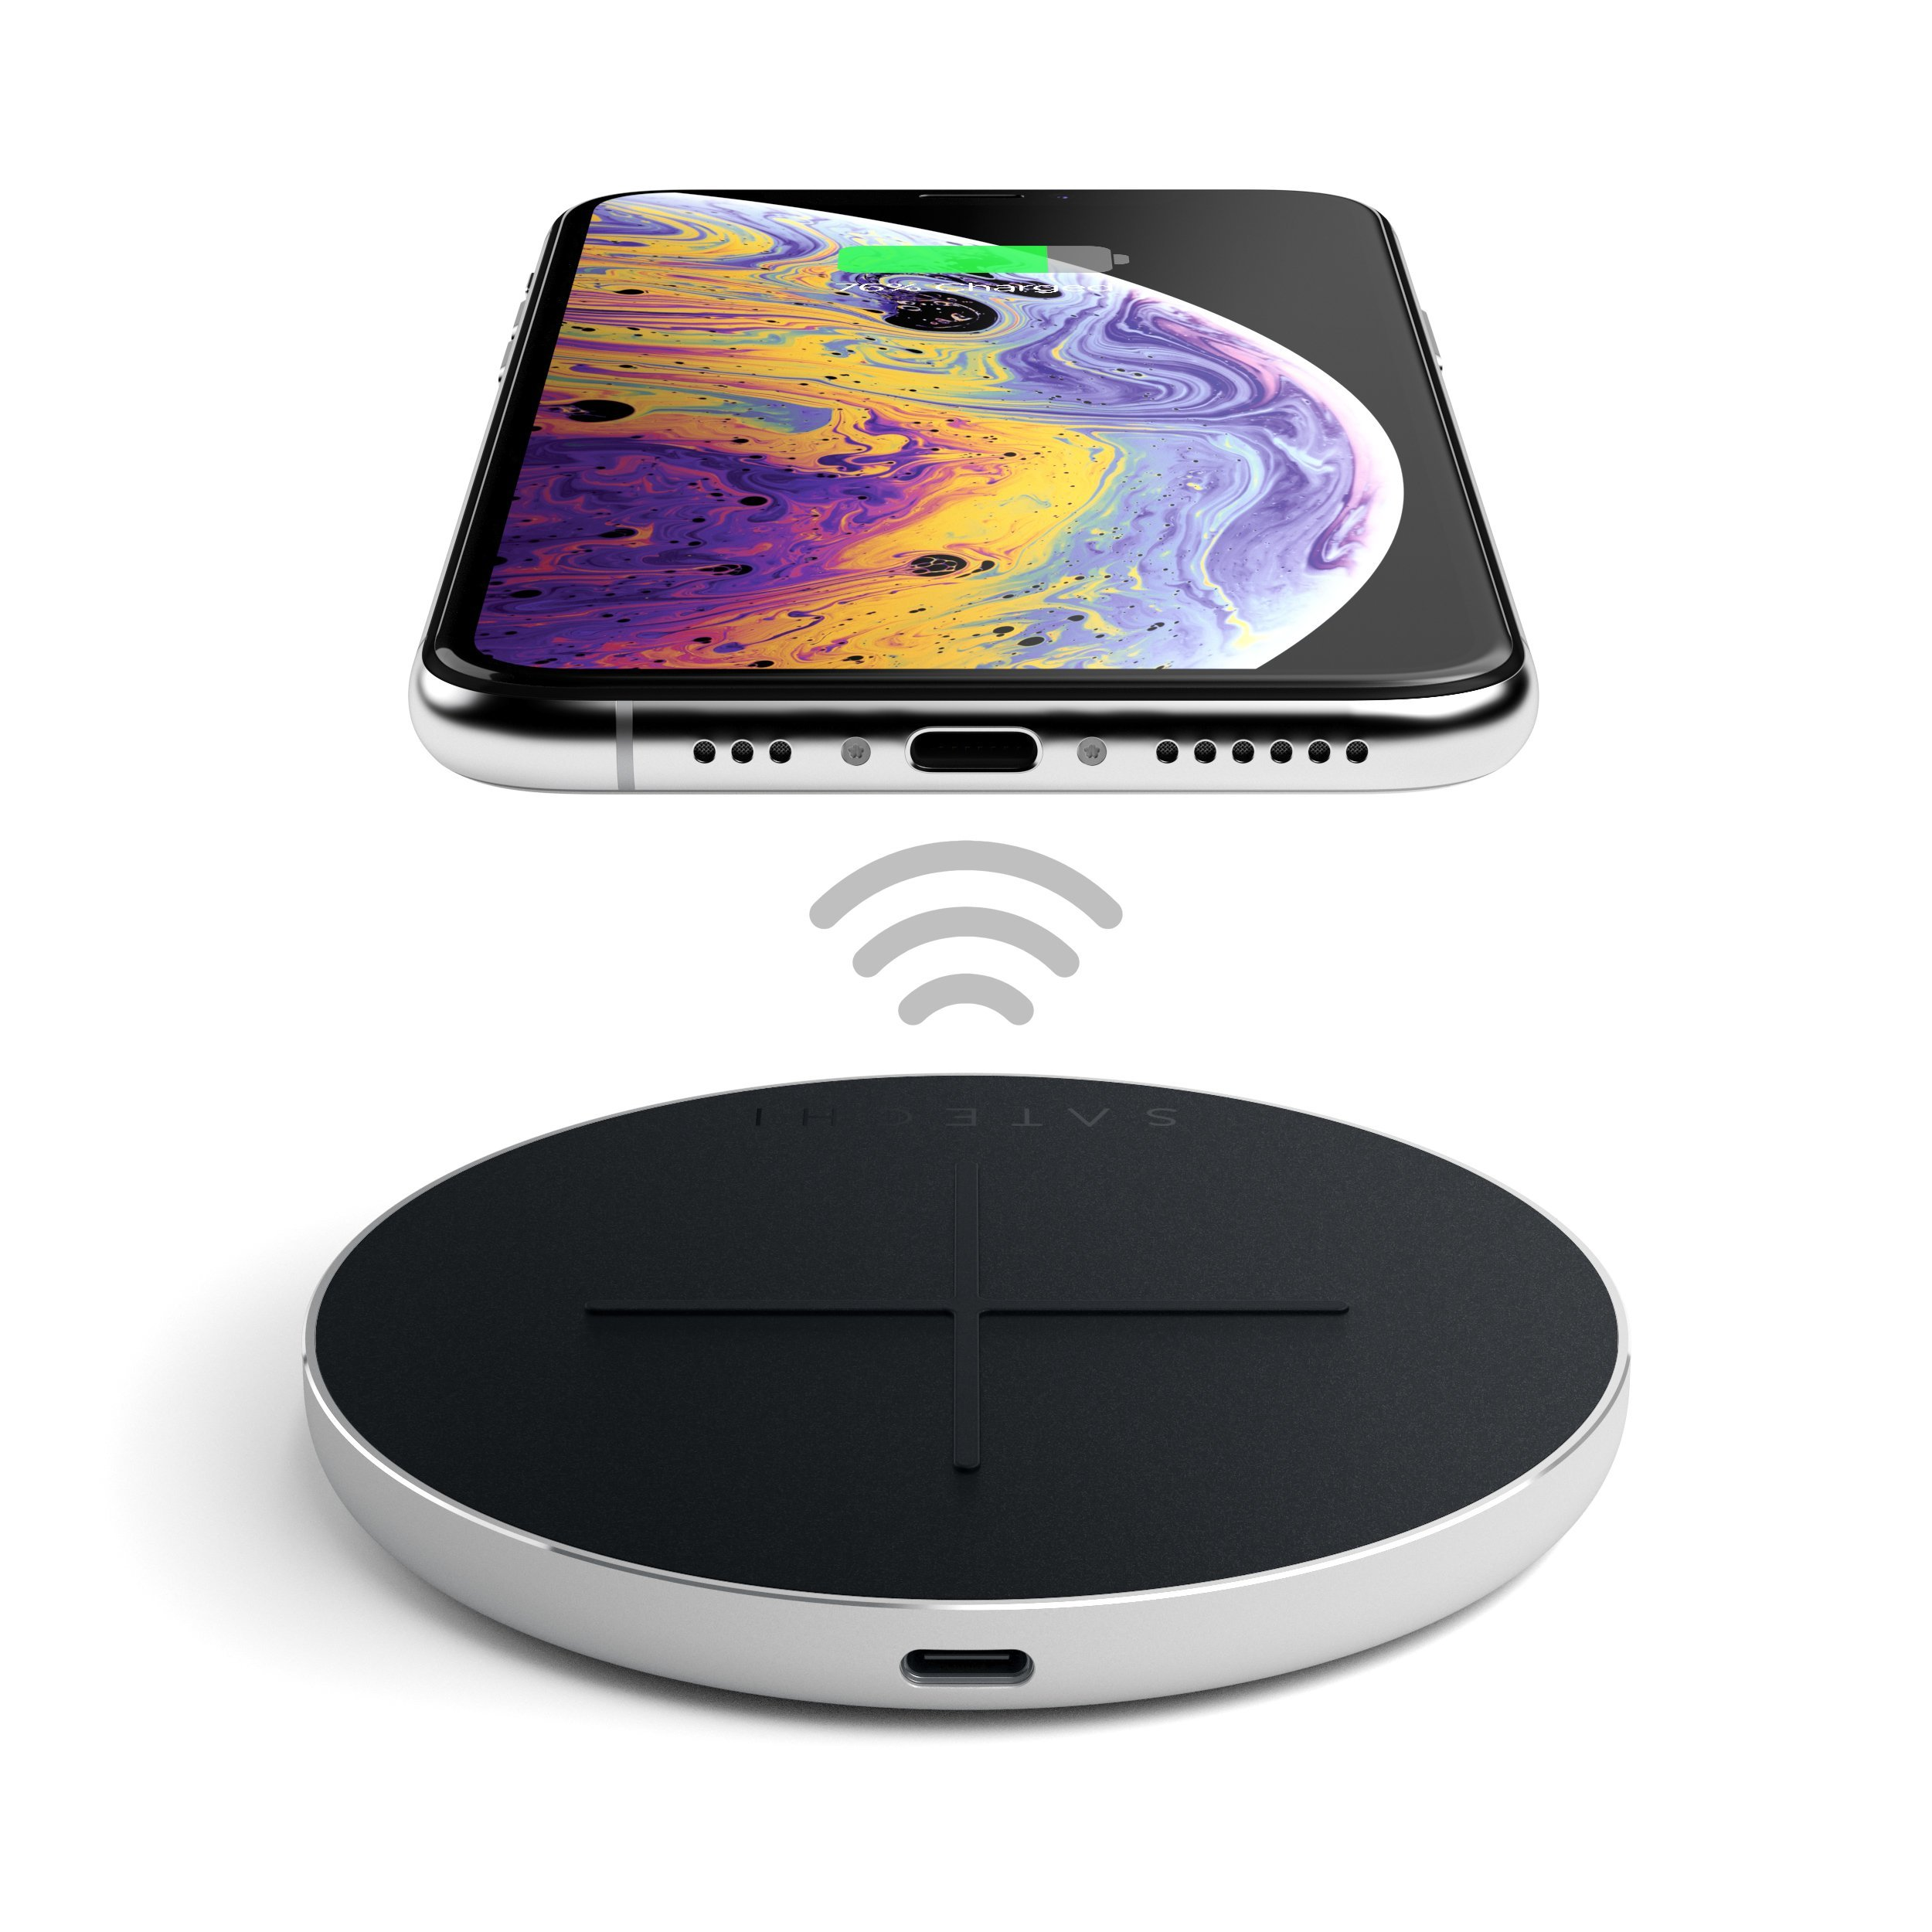 Satechi Debuts New Qi-Certified Aluminum Type-C Fast Wireless Charger for iPhone and Android